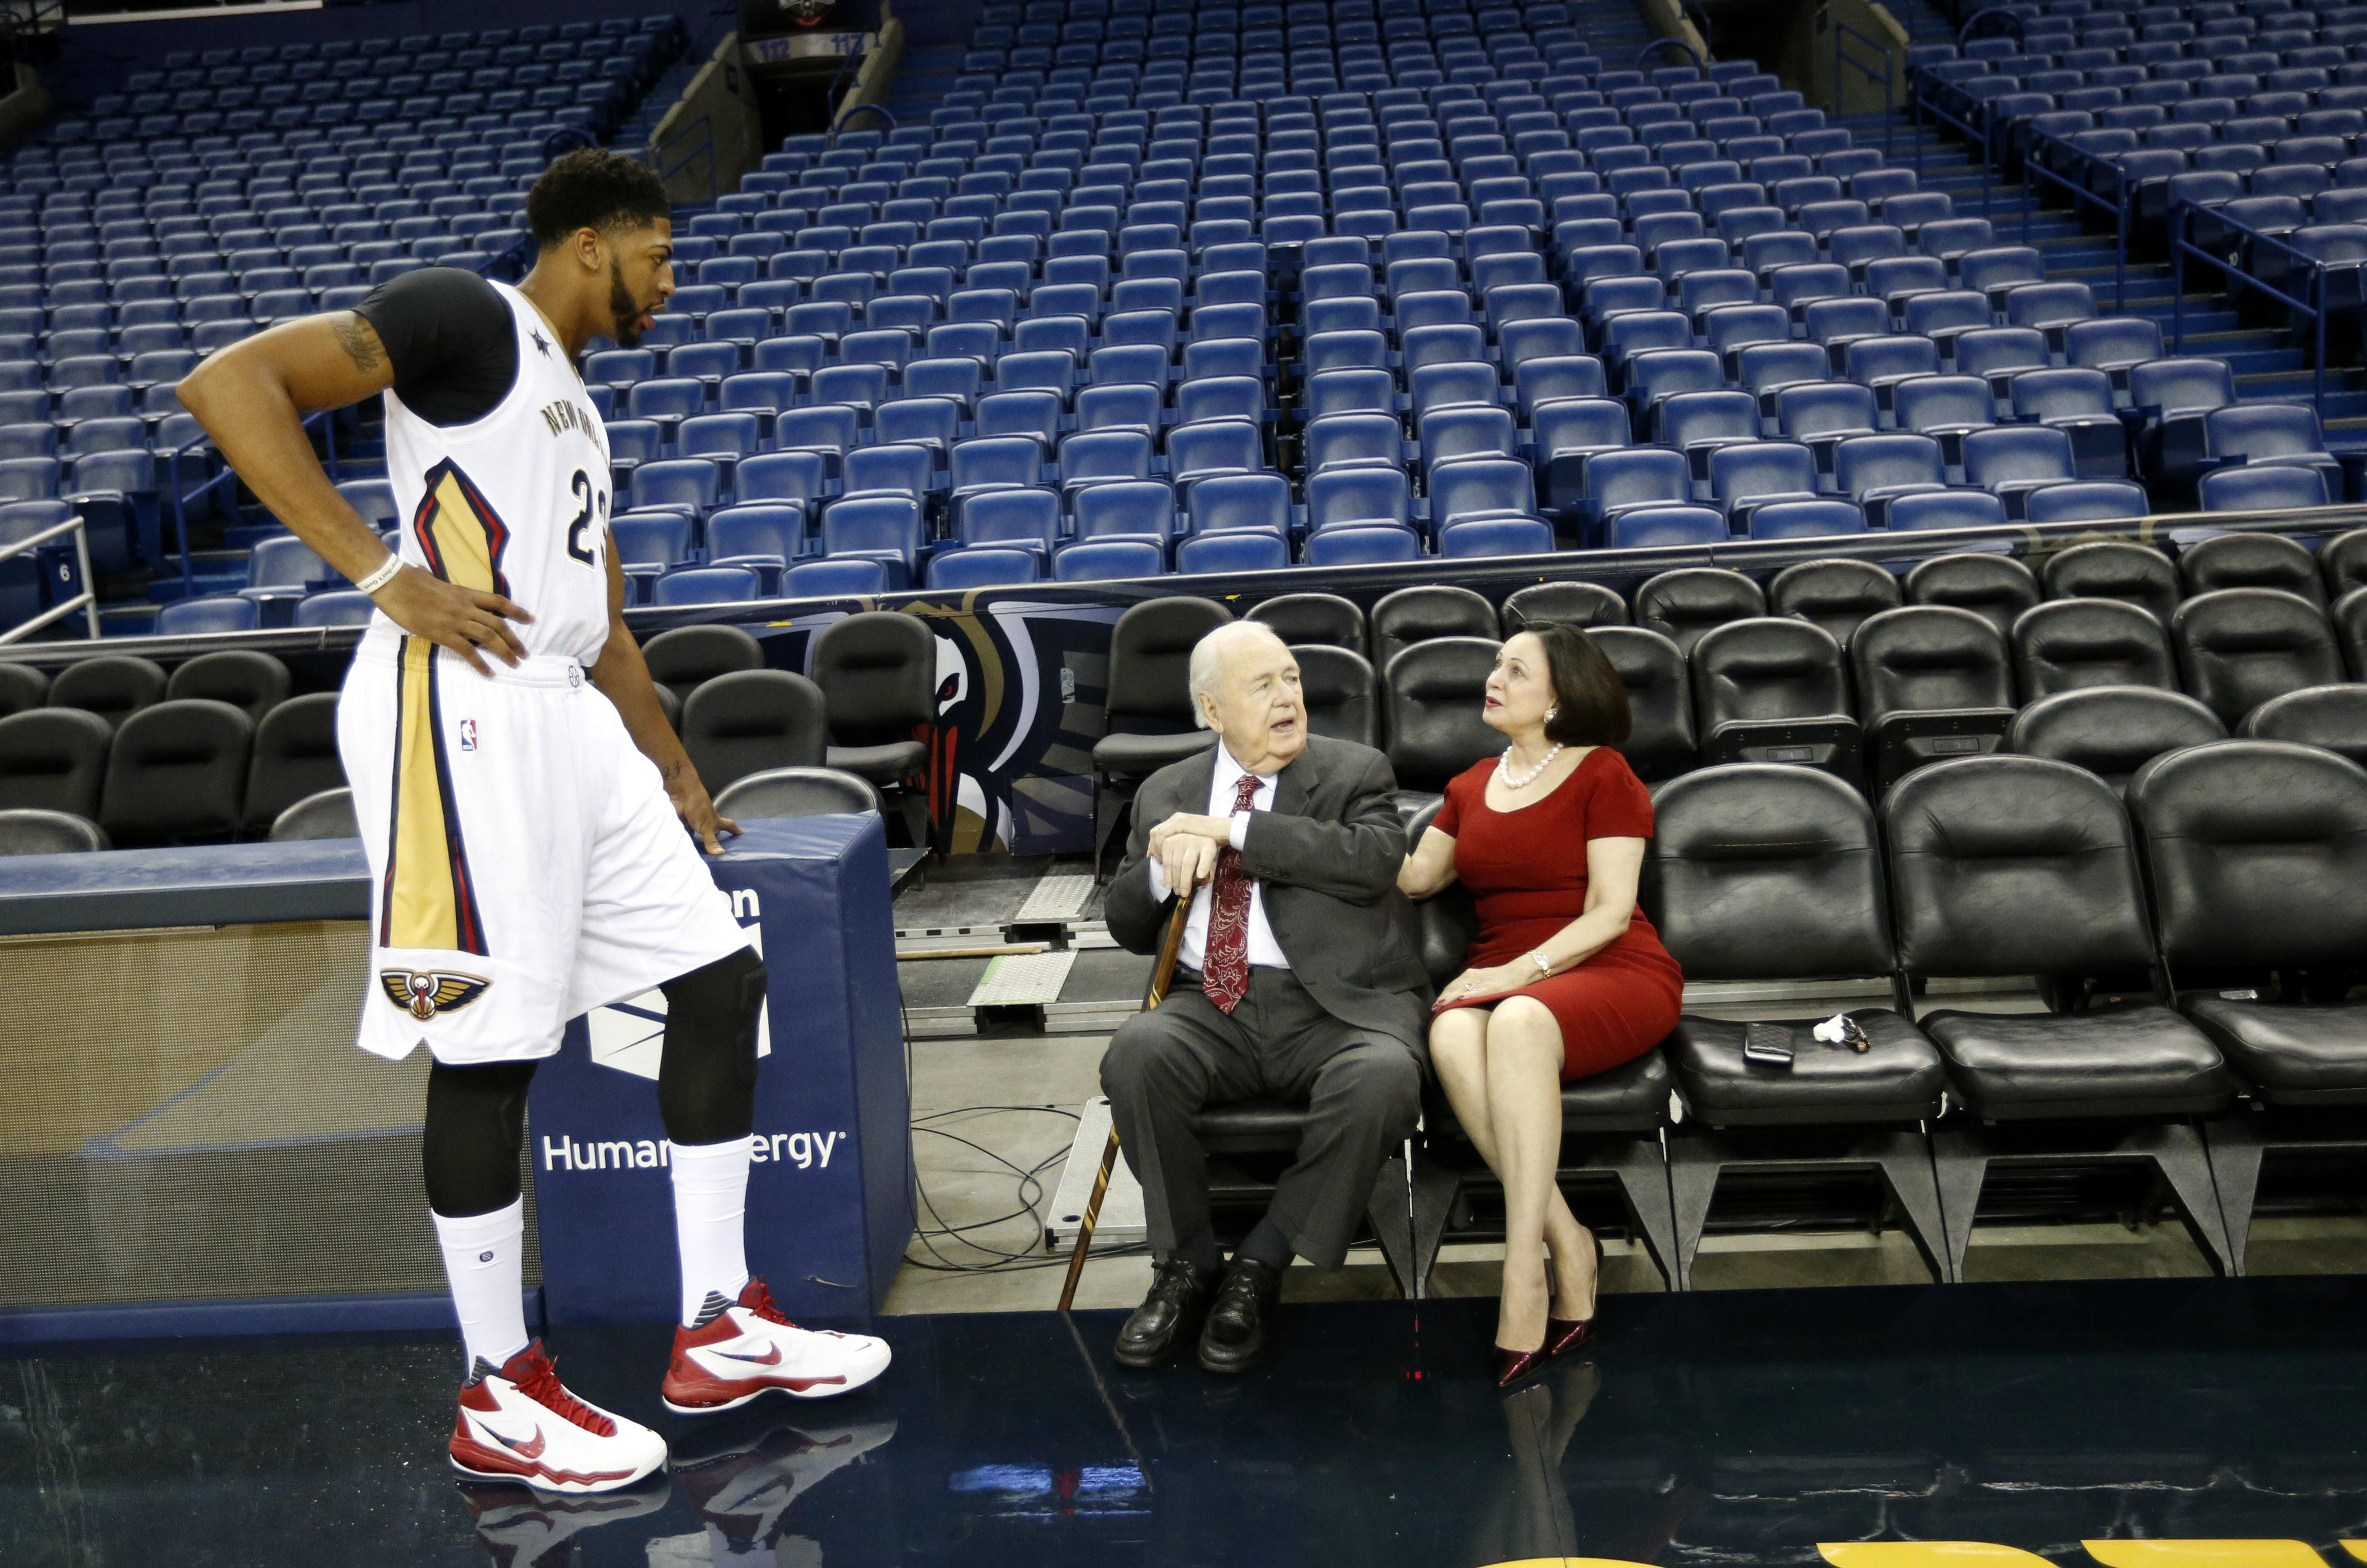 Pelicans_media_day_basketball